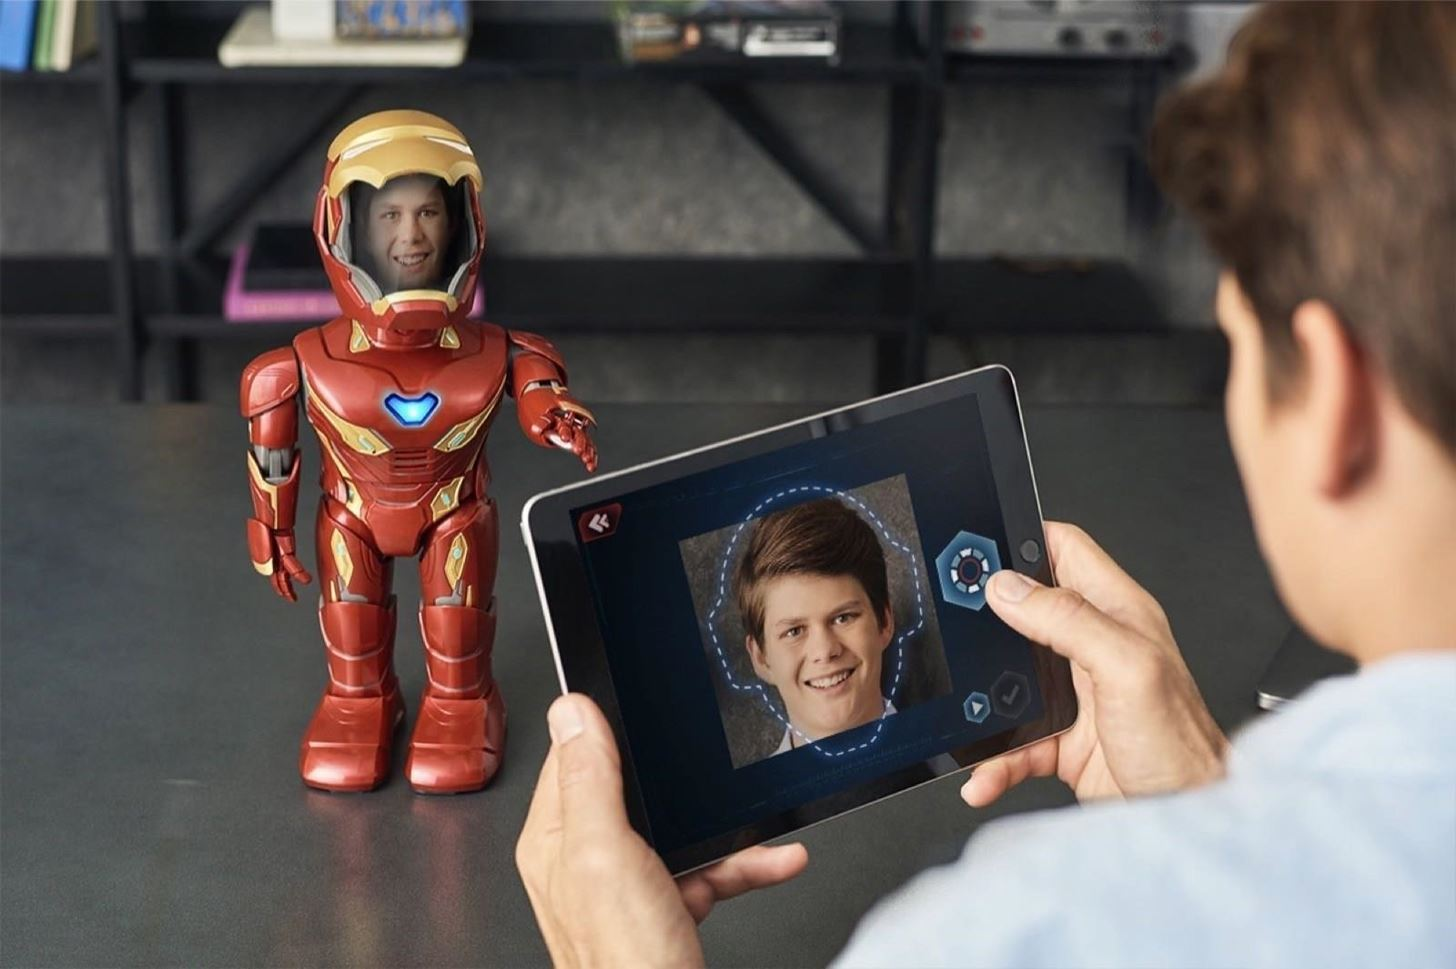 Marvel Continues Its Augmented Reality Rampage with Iron Man Robot for 'Avengers: Endgame'